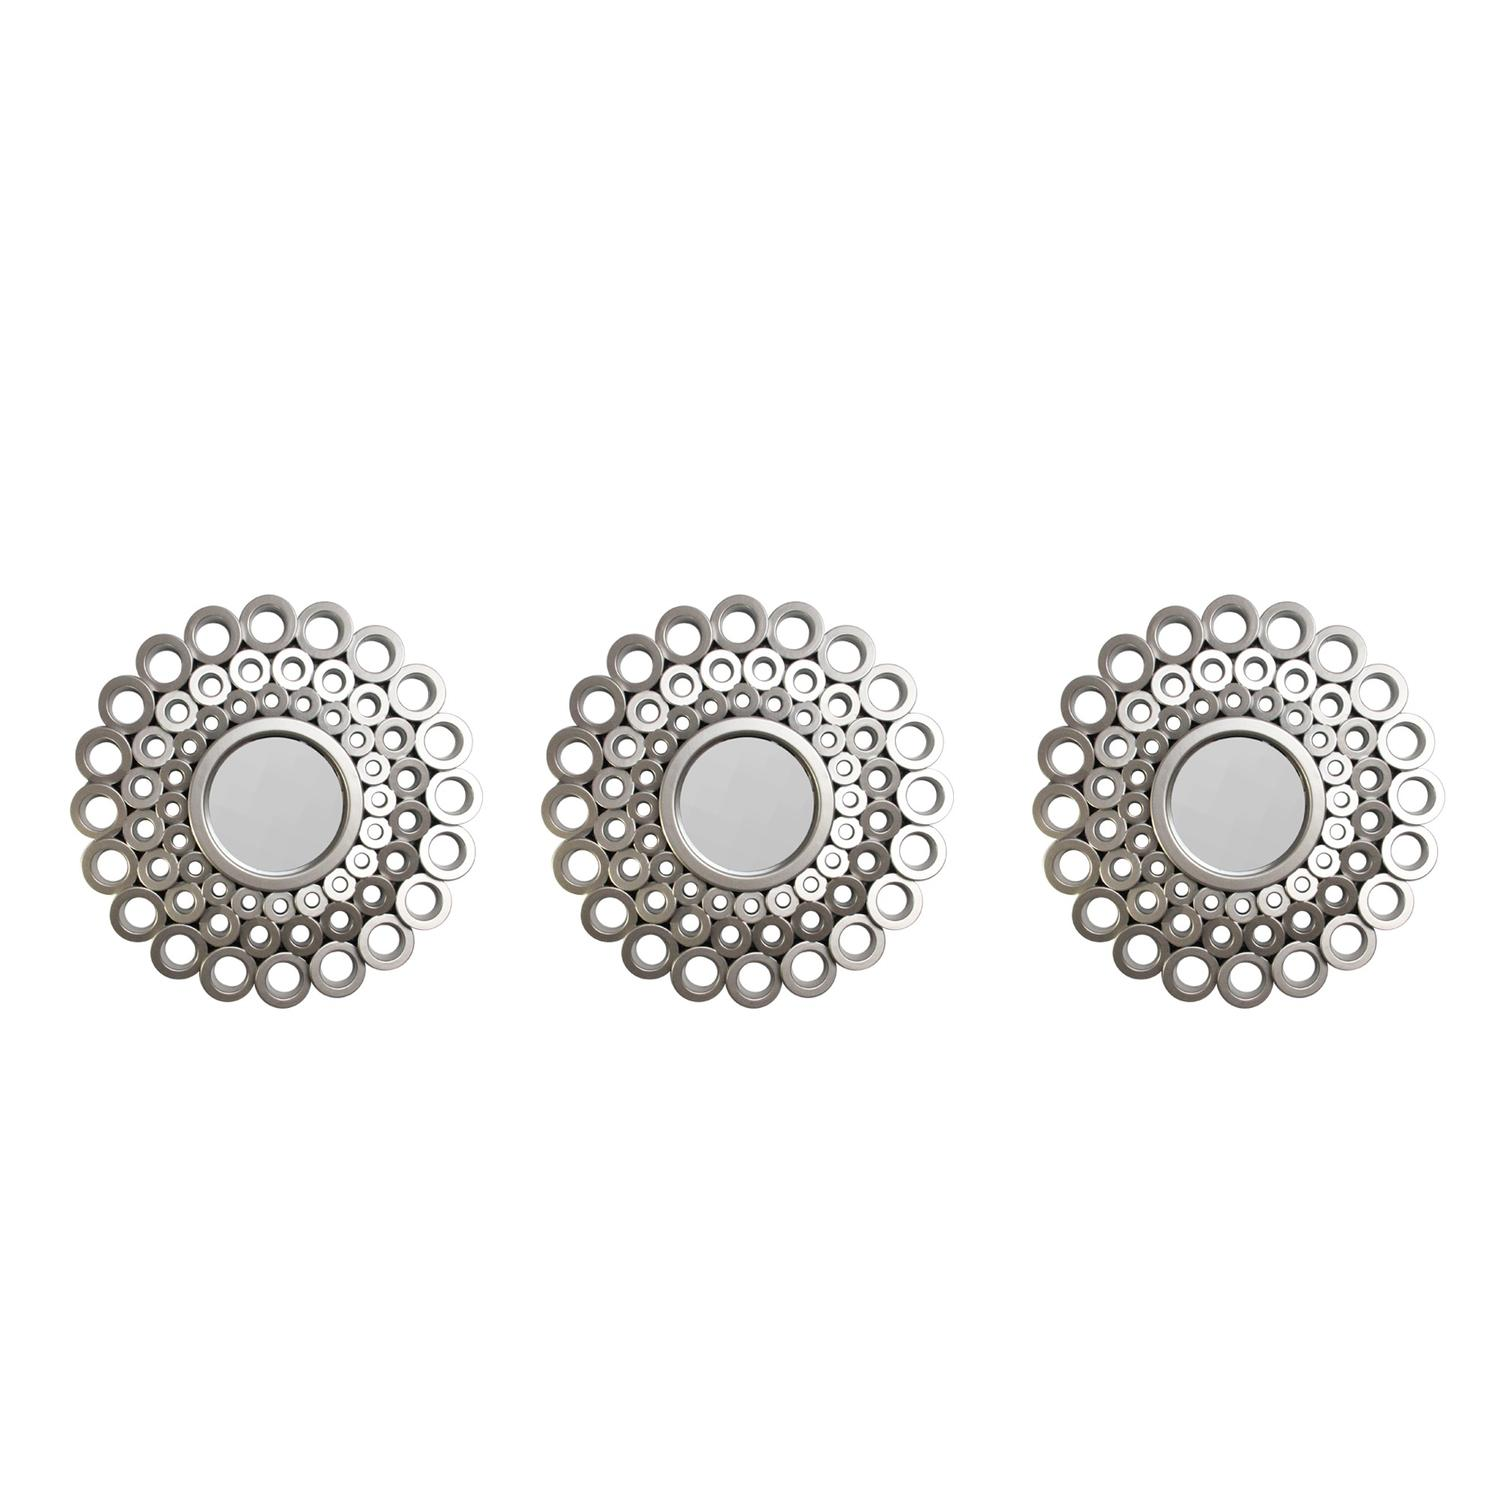 """Set of 3 Cascading Angular Orbs Matte Pewter Gray Decorative Round Mirrors 9.5"""" by Northlight"""